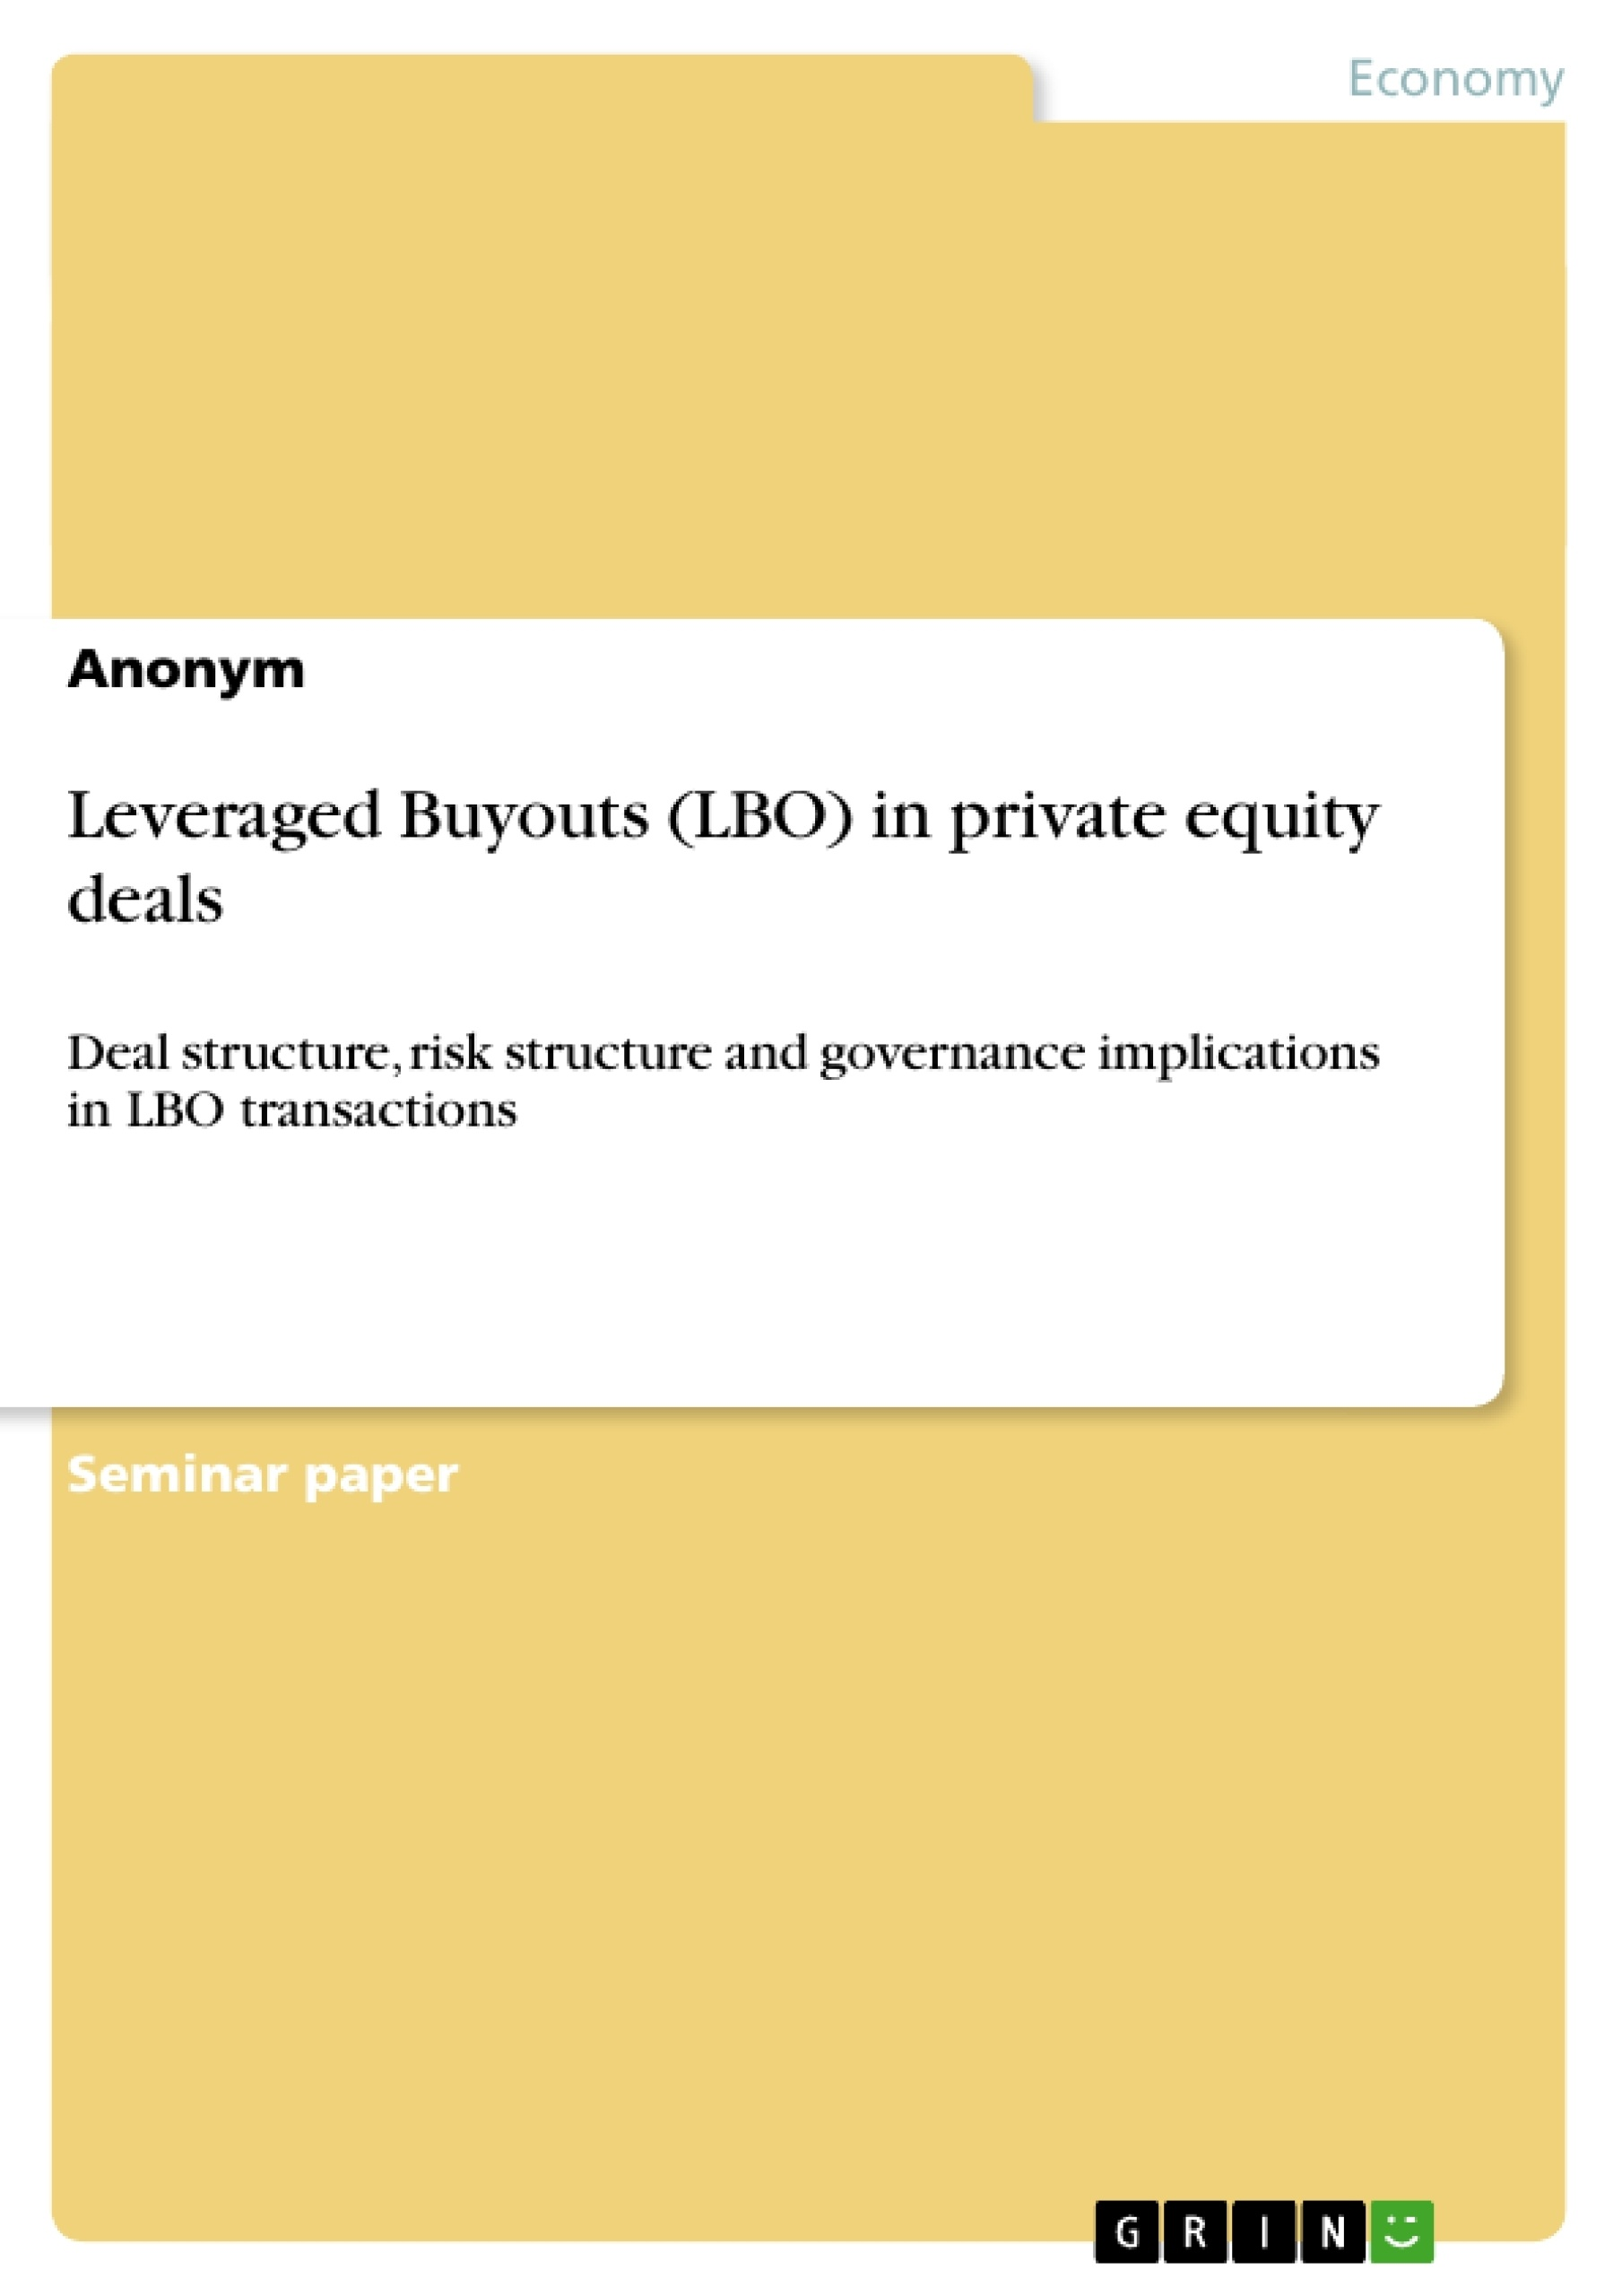 Title: Leveraged Buyouts (LBO) in private equity deals